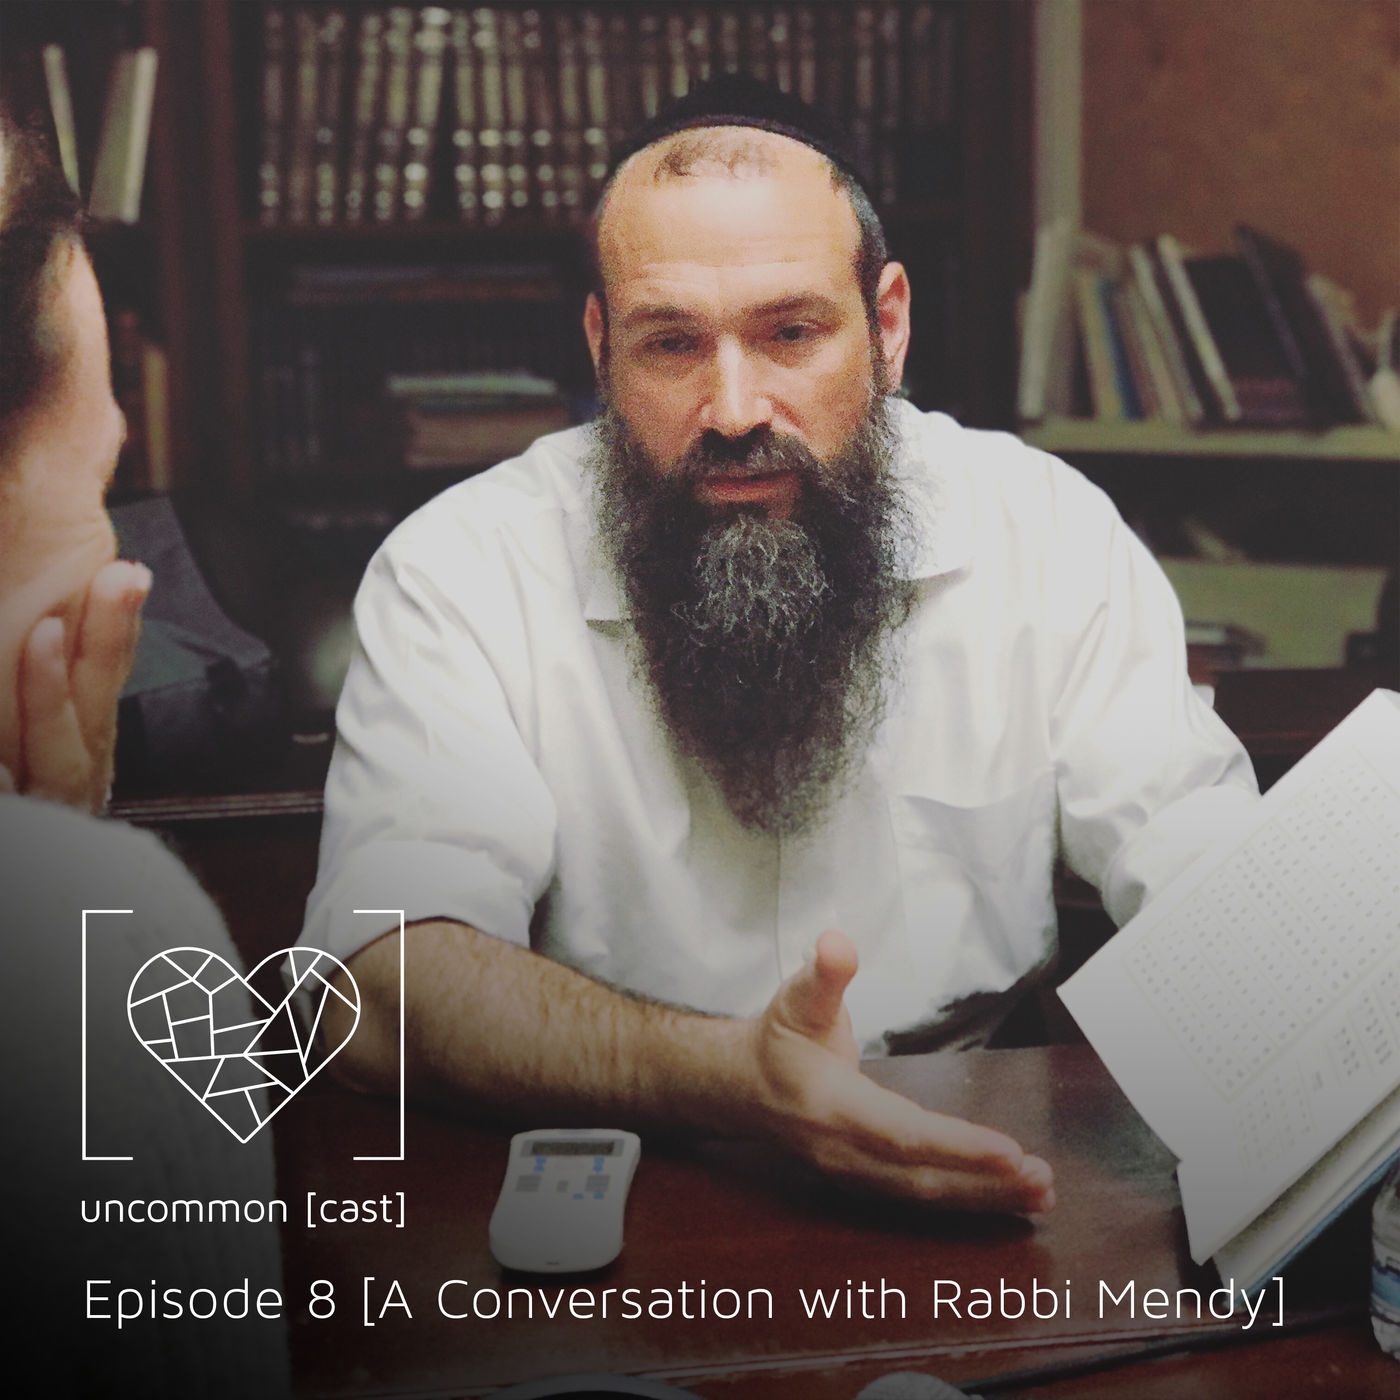 A Conversation with Rabbi Mendy - Part 1